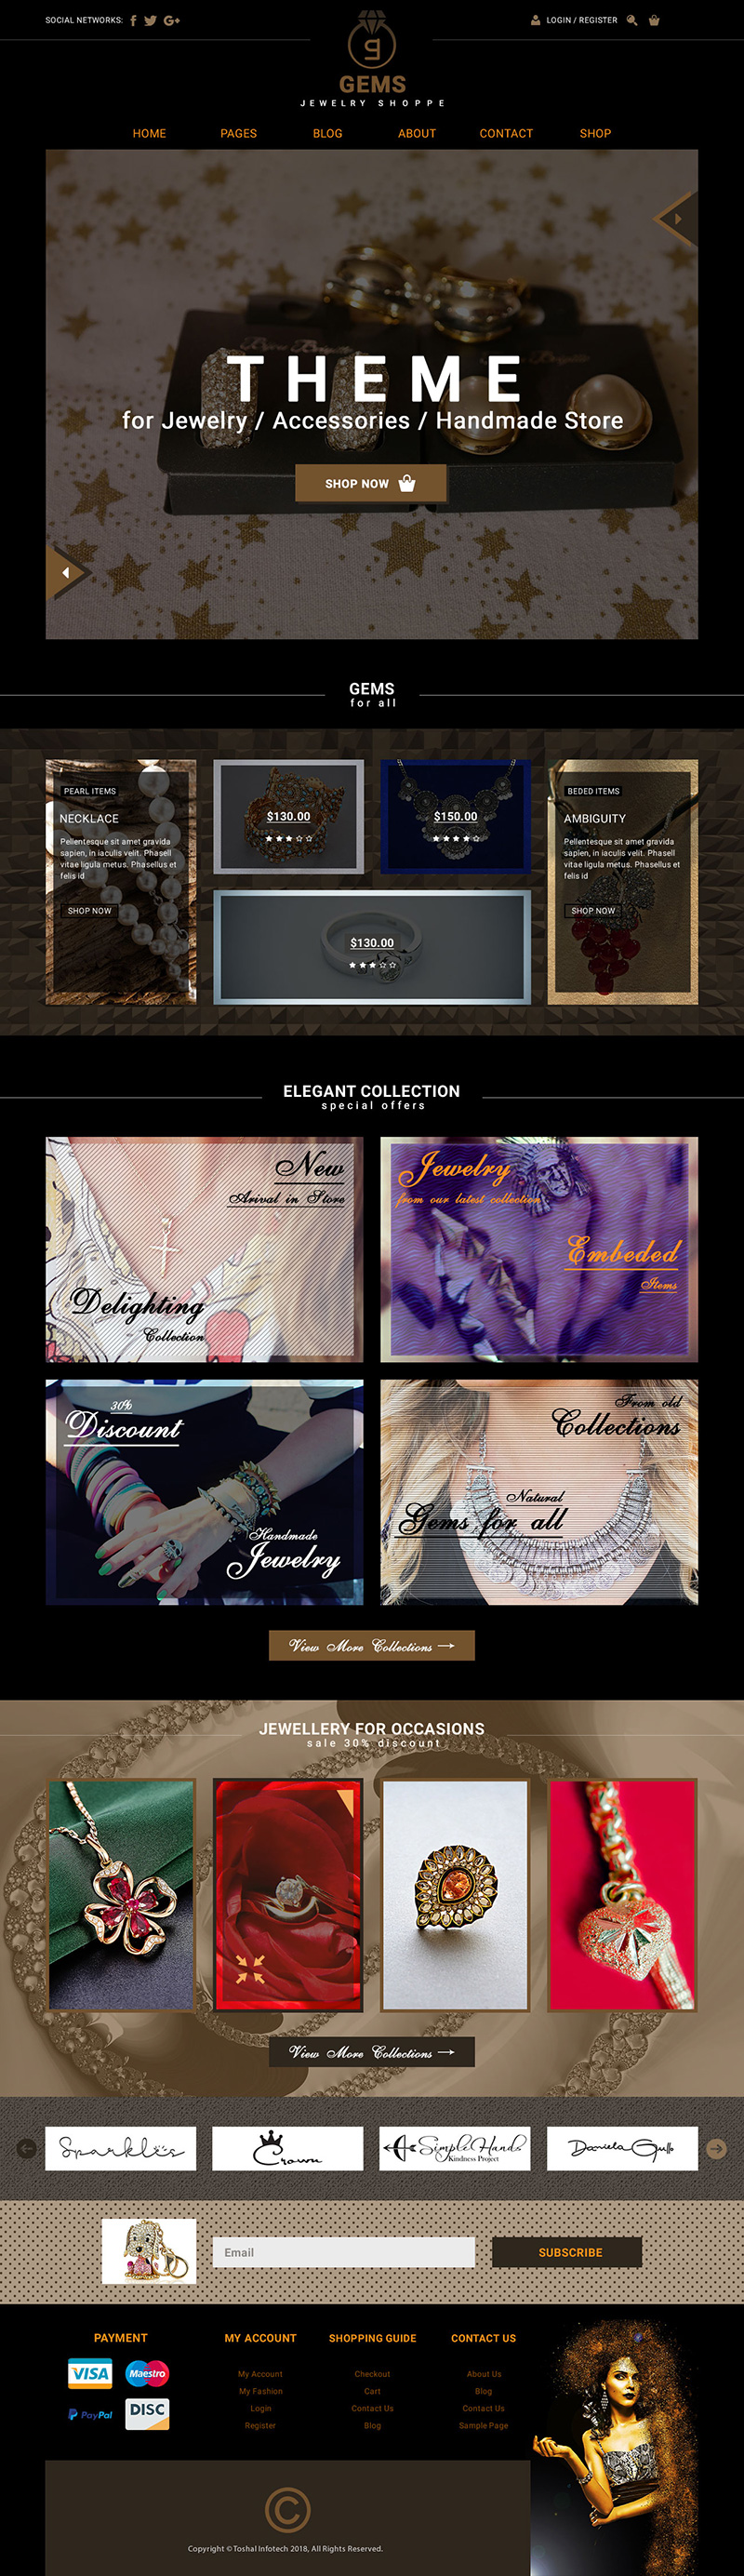 Gems Jewelry Shoppe Theme Old